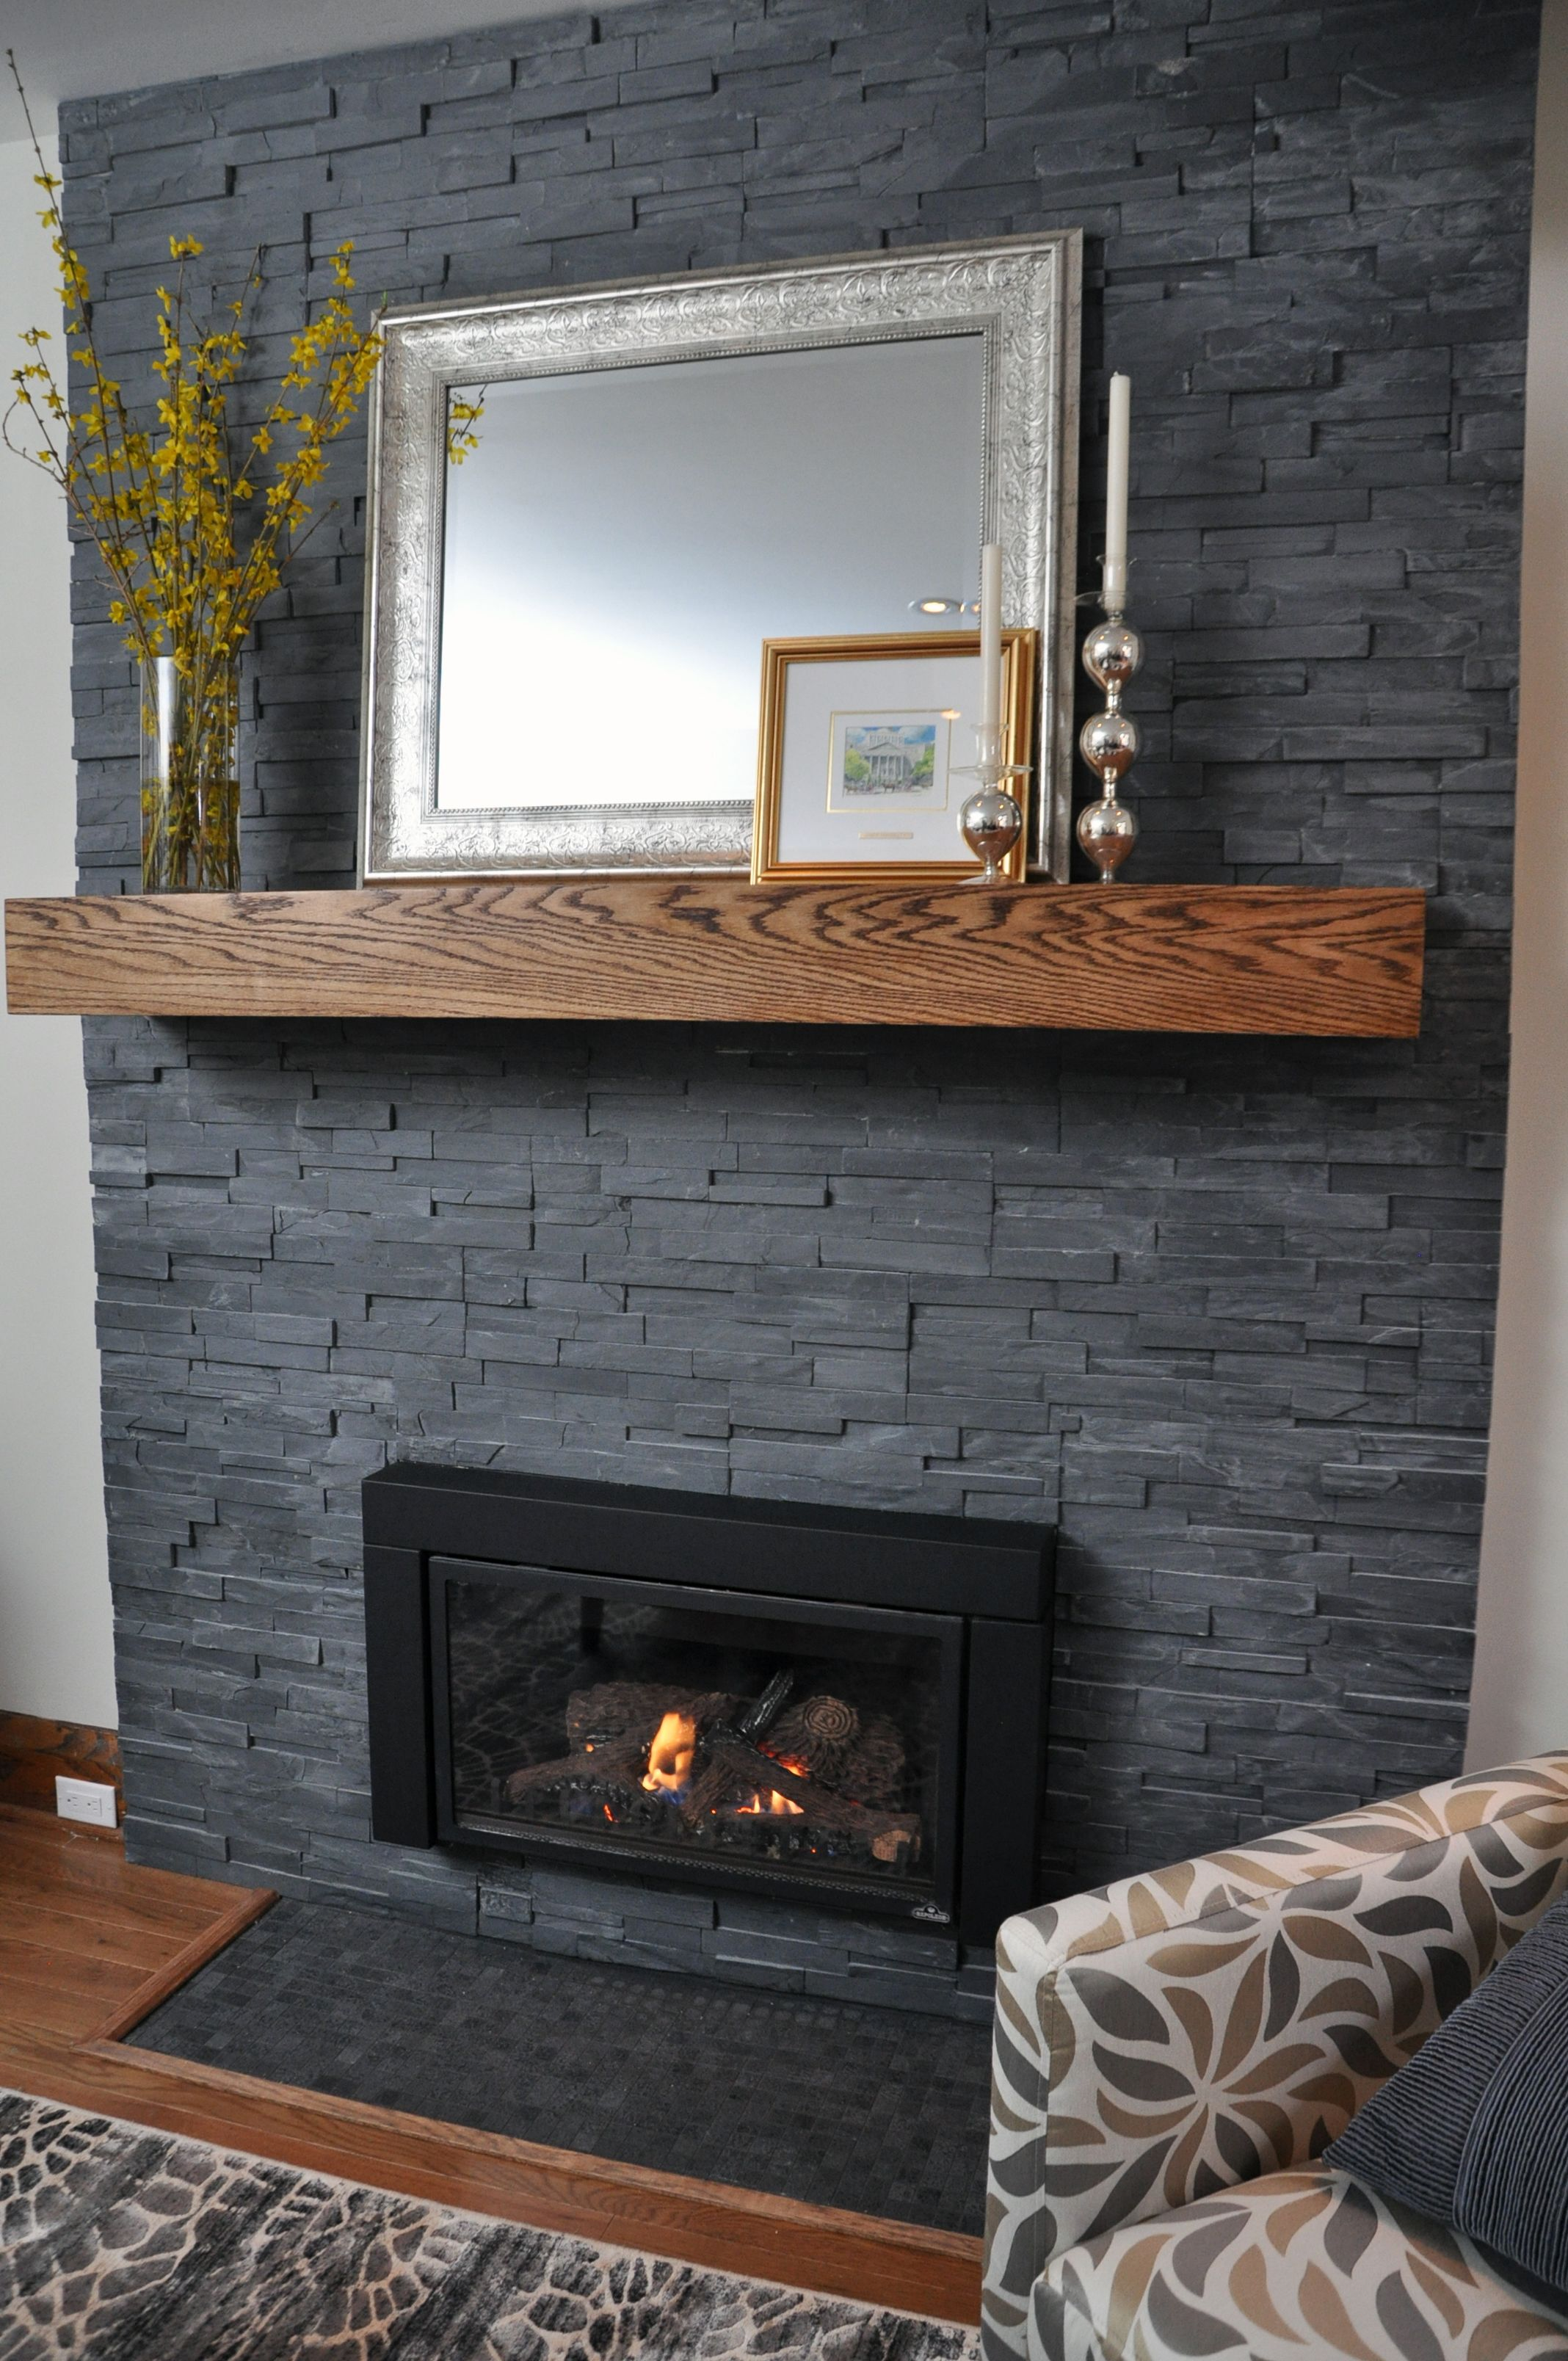 How To Paint A Stone Fireplace   arxiusarquitectura